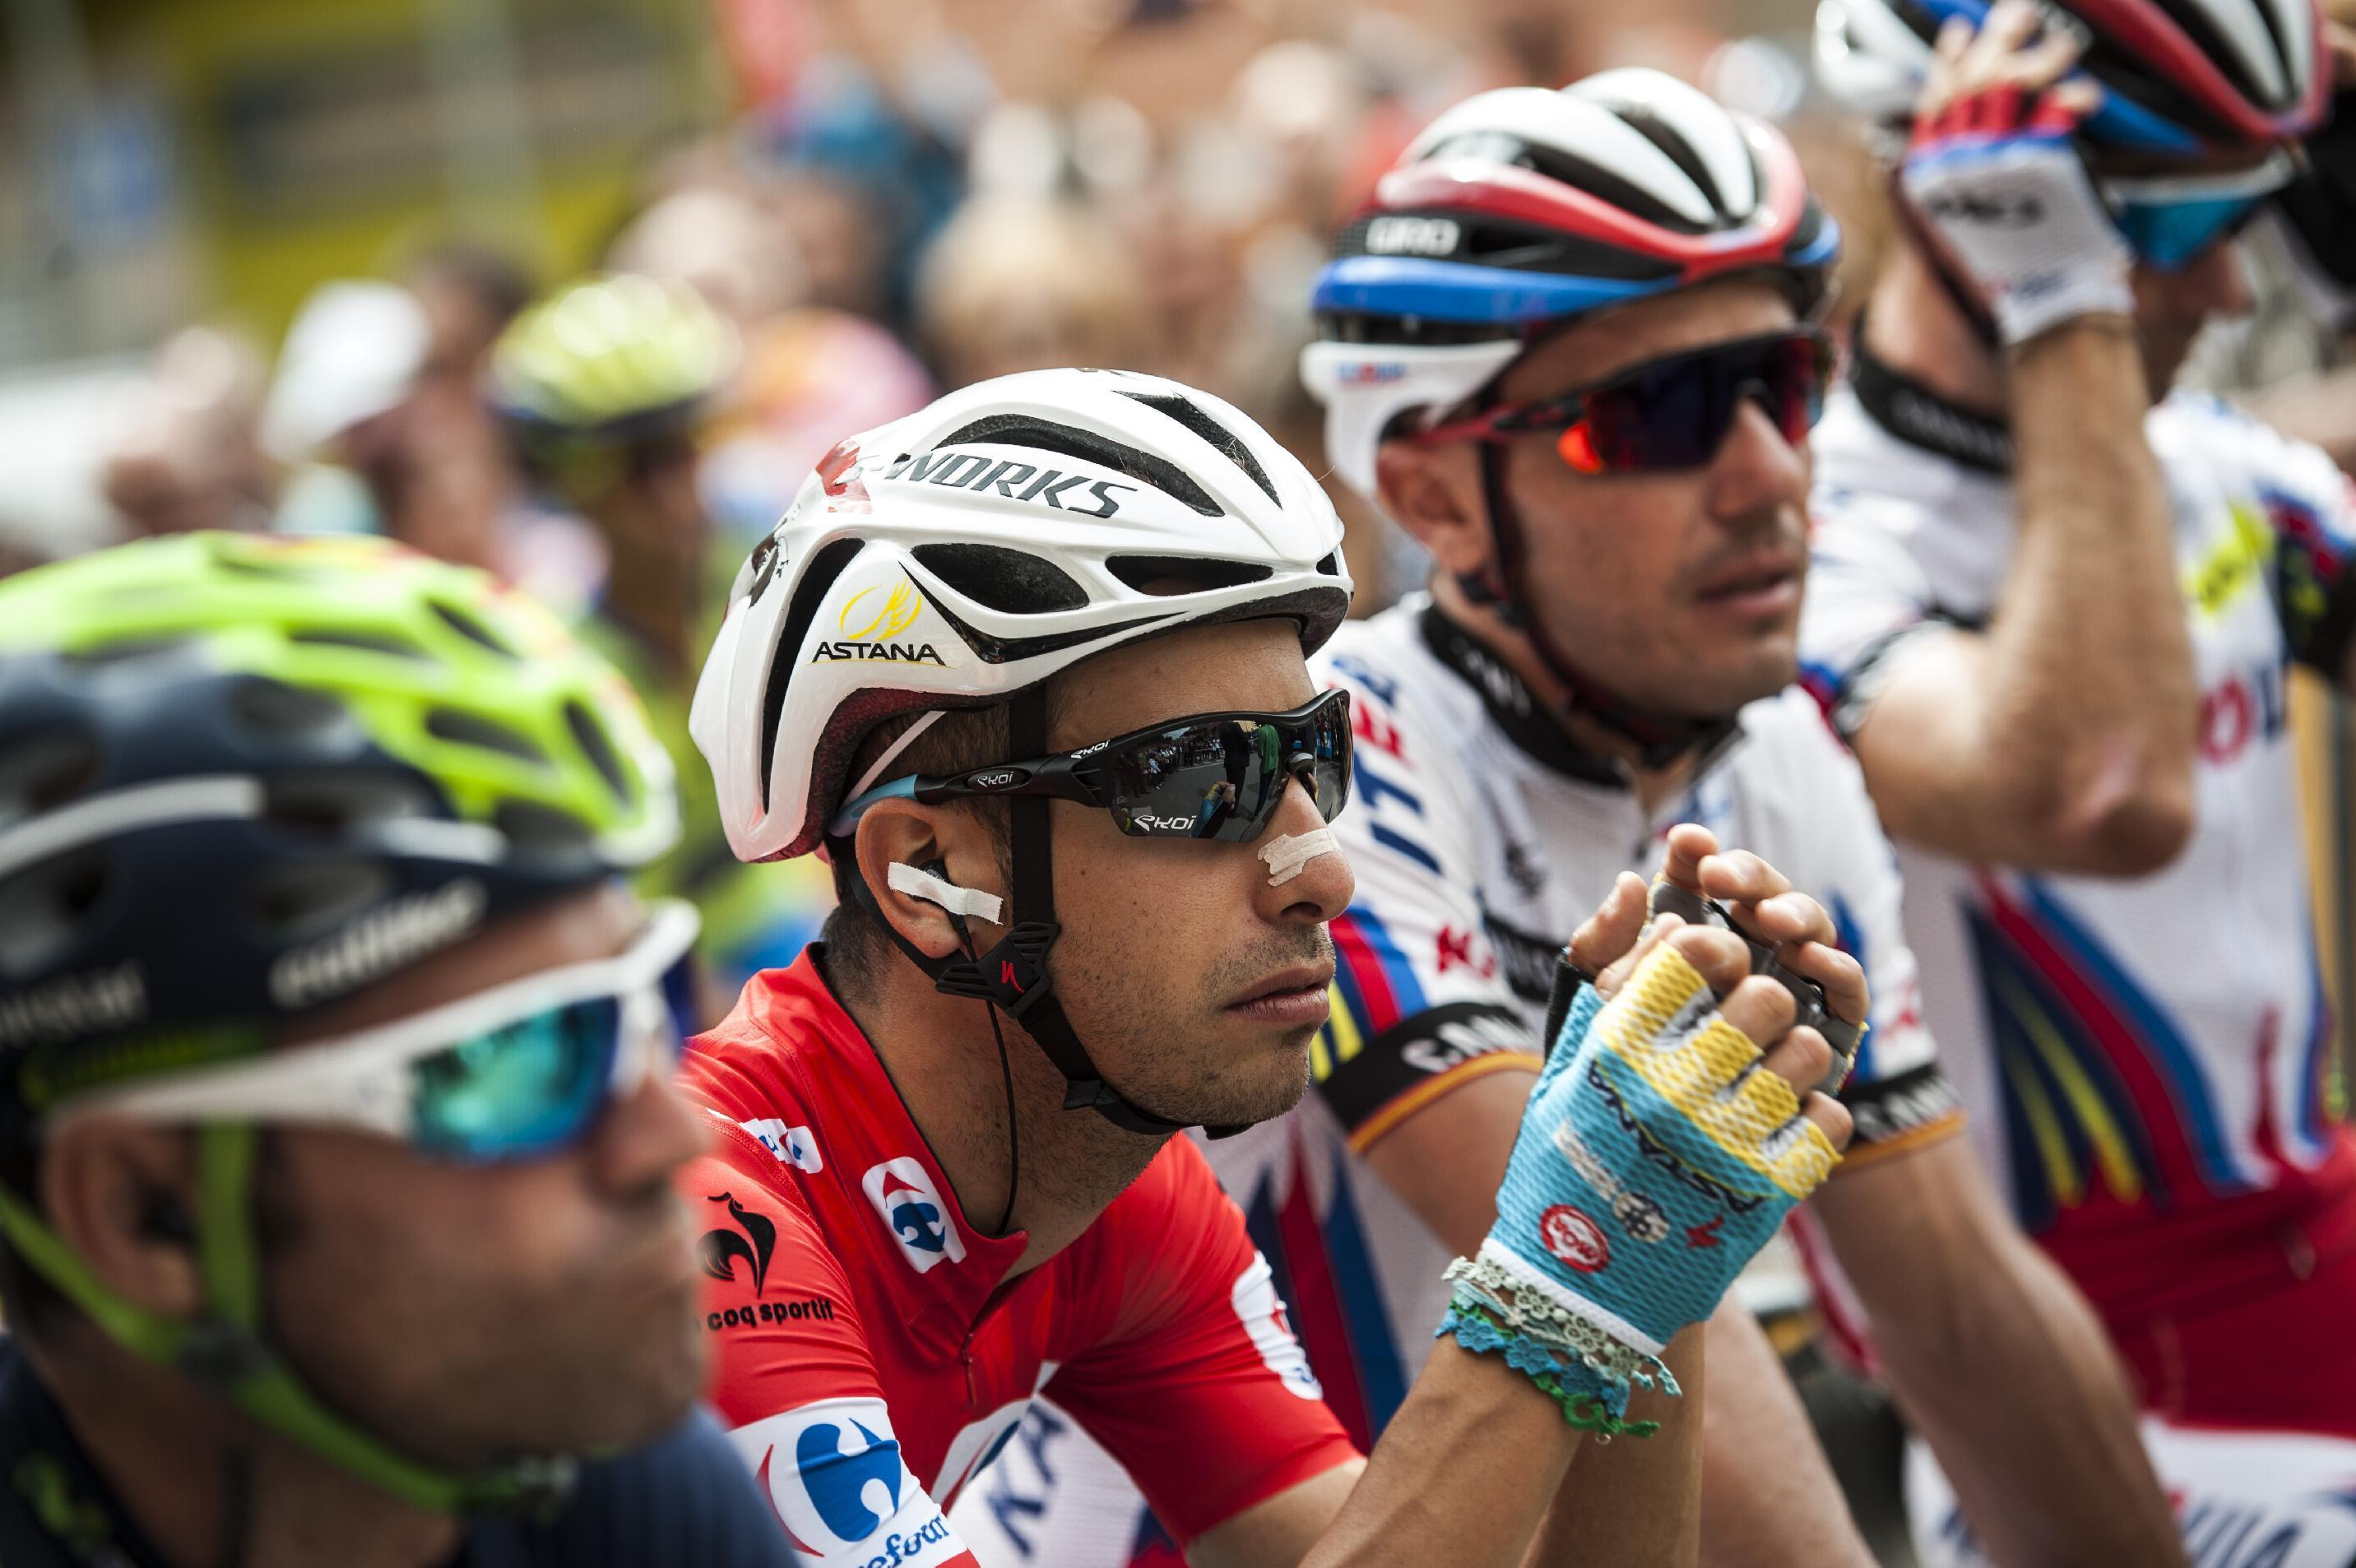 Oliveira of Portugal wins 13th Vuelta stage, Aru keeps lead